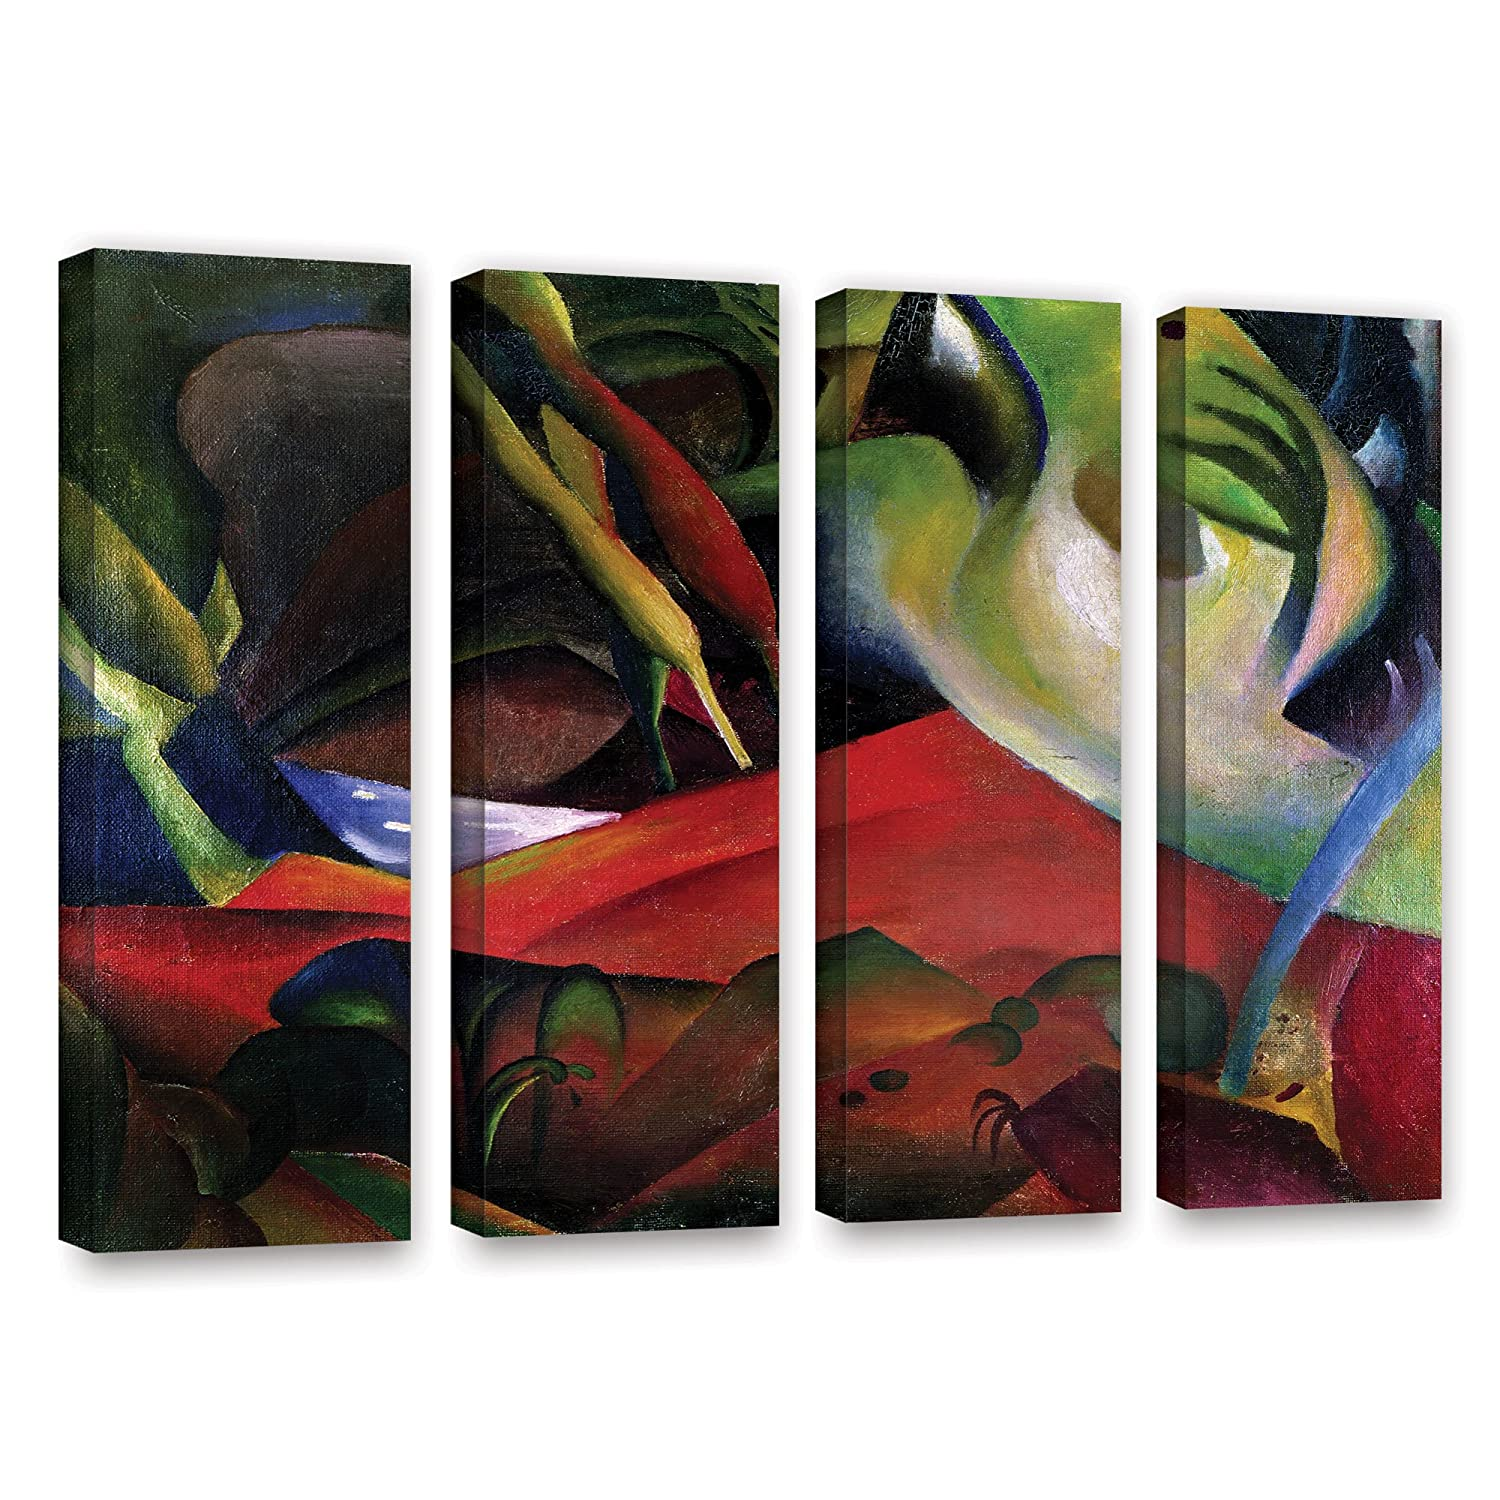 ArtWall Franz Marcs The Storm 4 Piece Gallery Wrapped Canvas Set 24 x 32